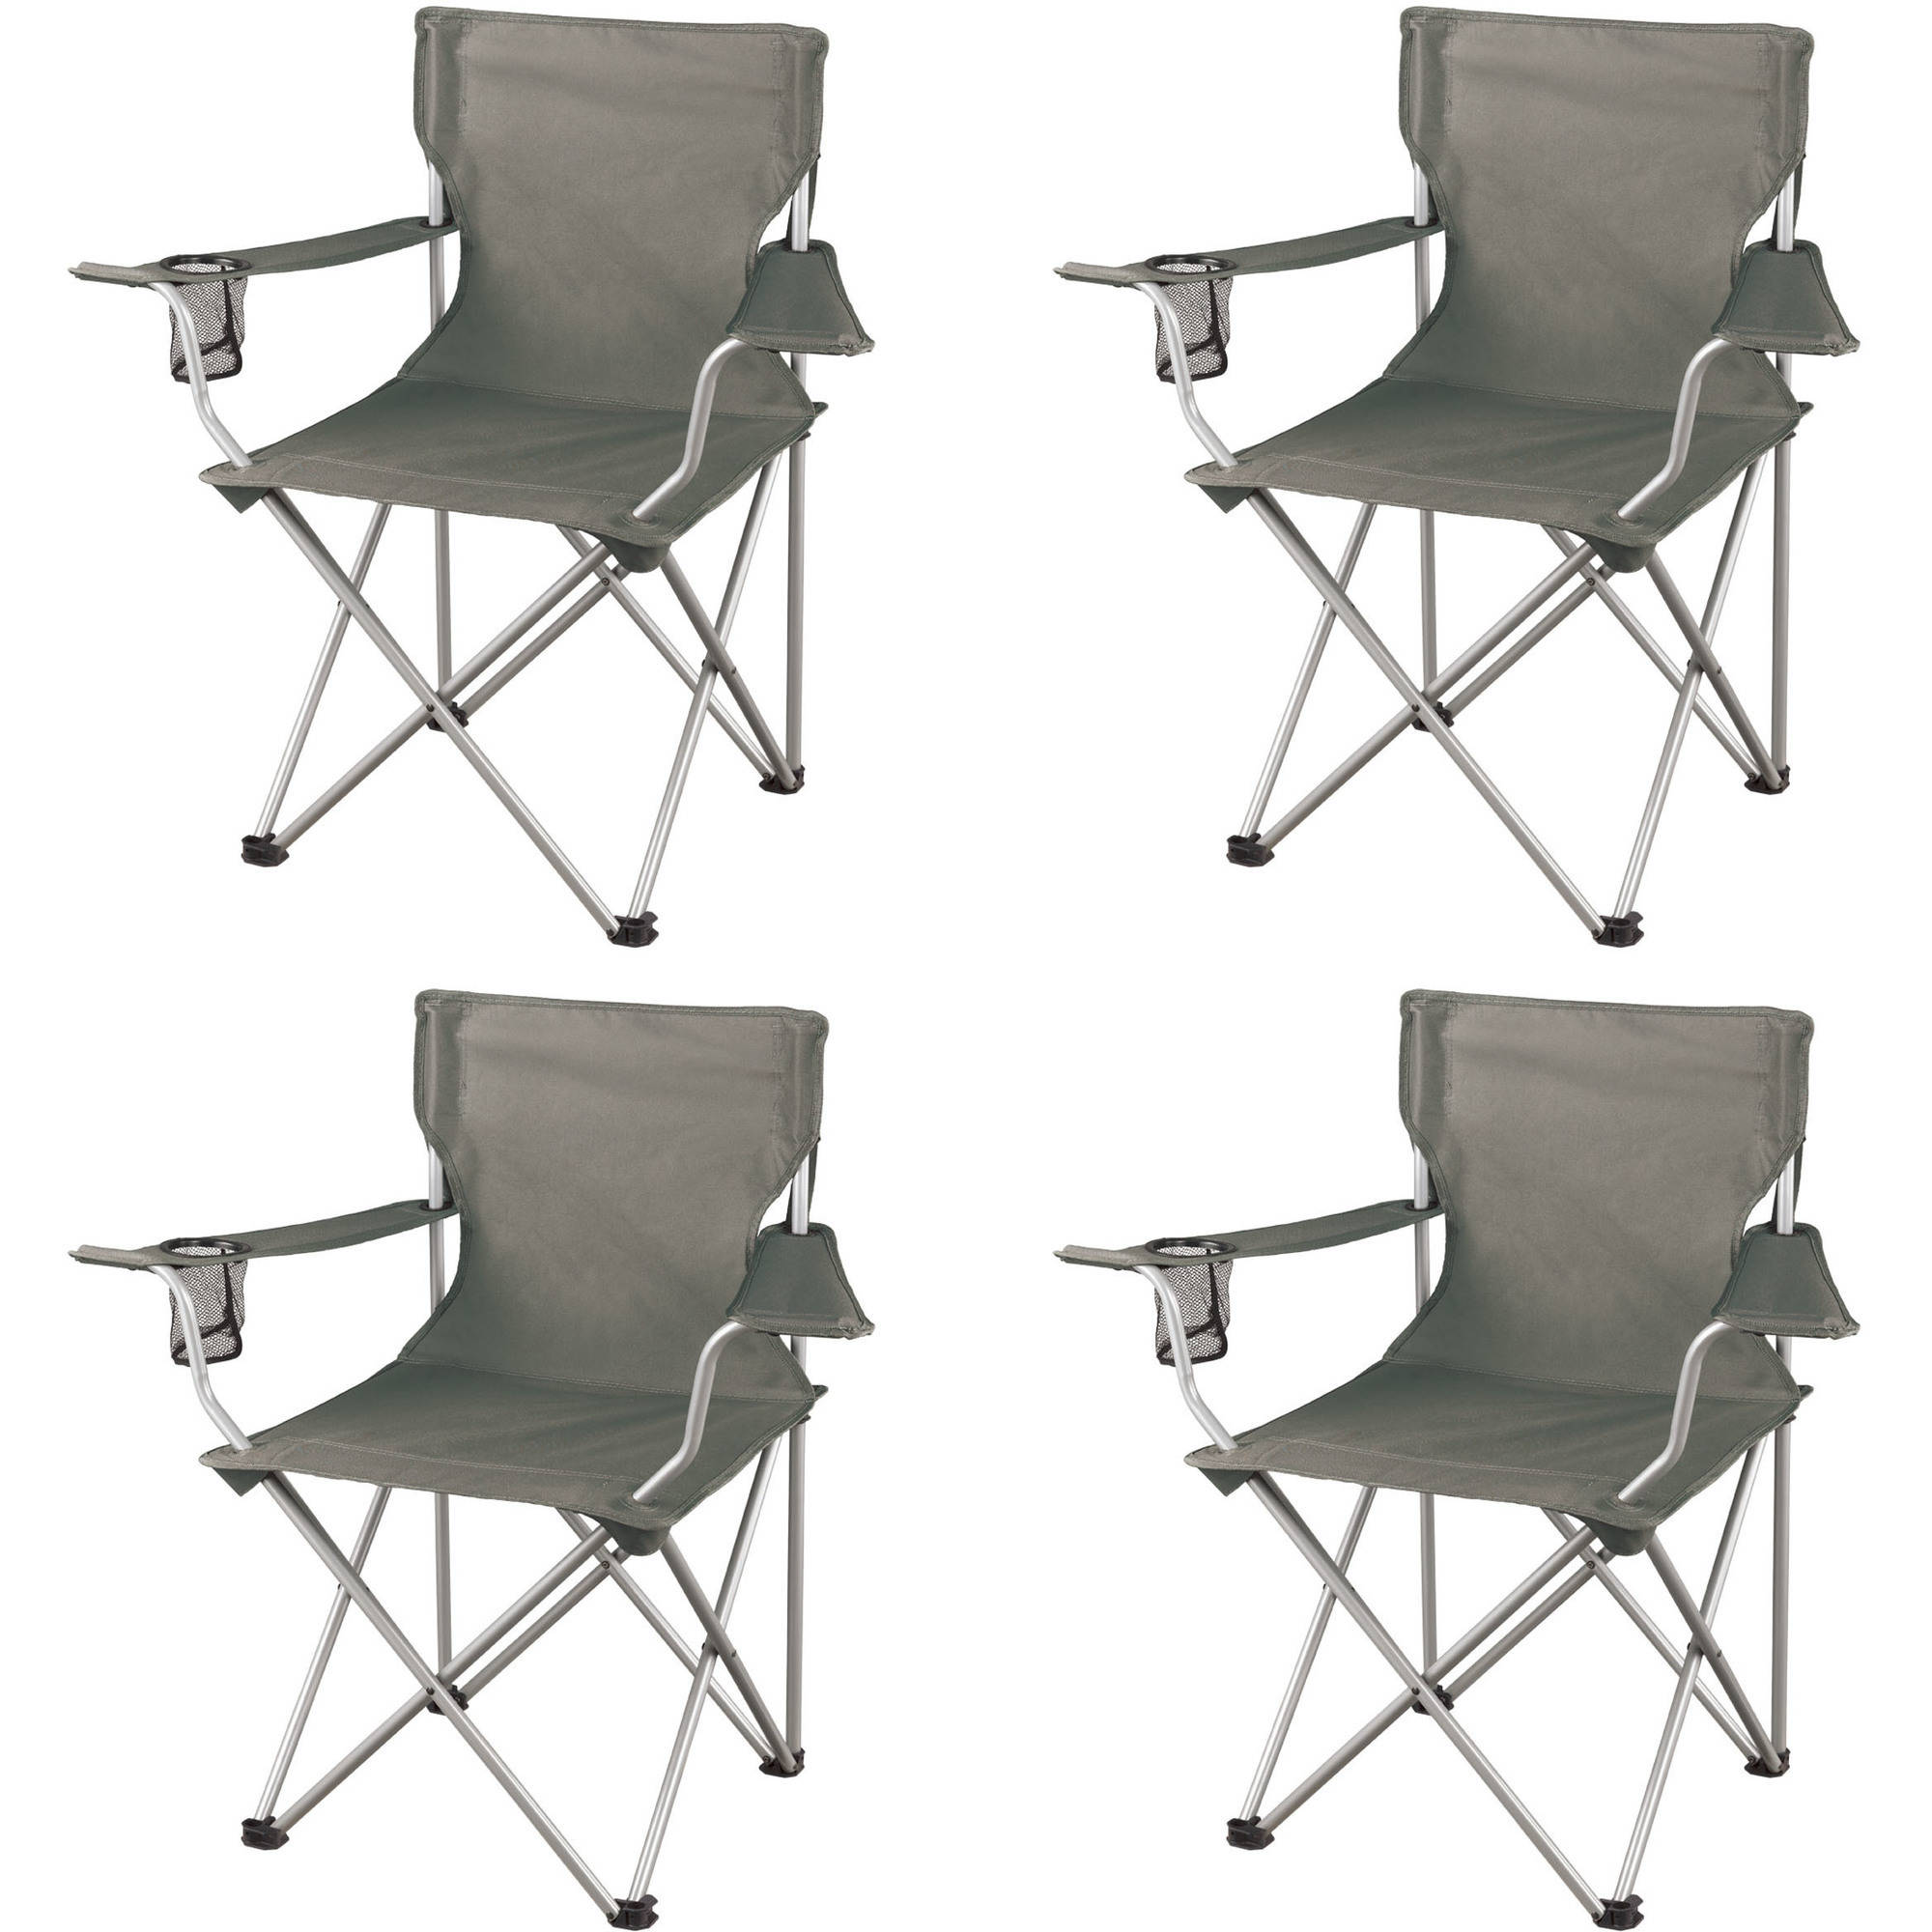 Chairs Folding Ozark Trail Classic Folding Camp Chairs Set Of 4